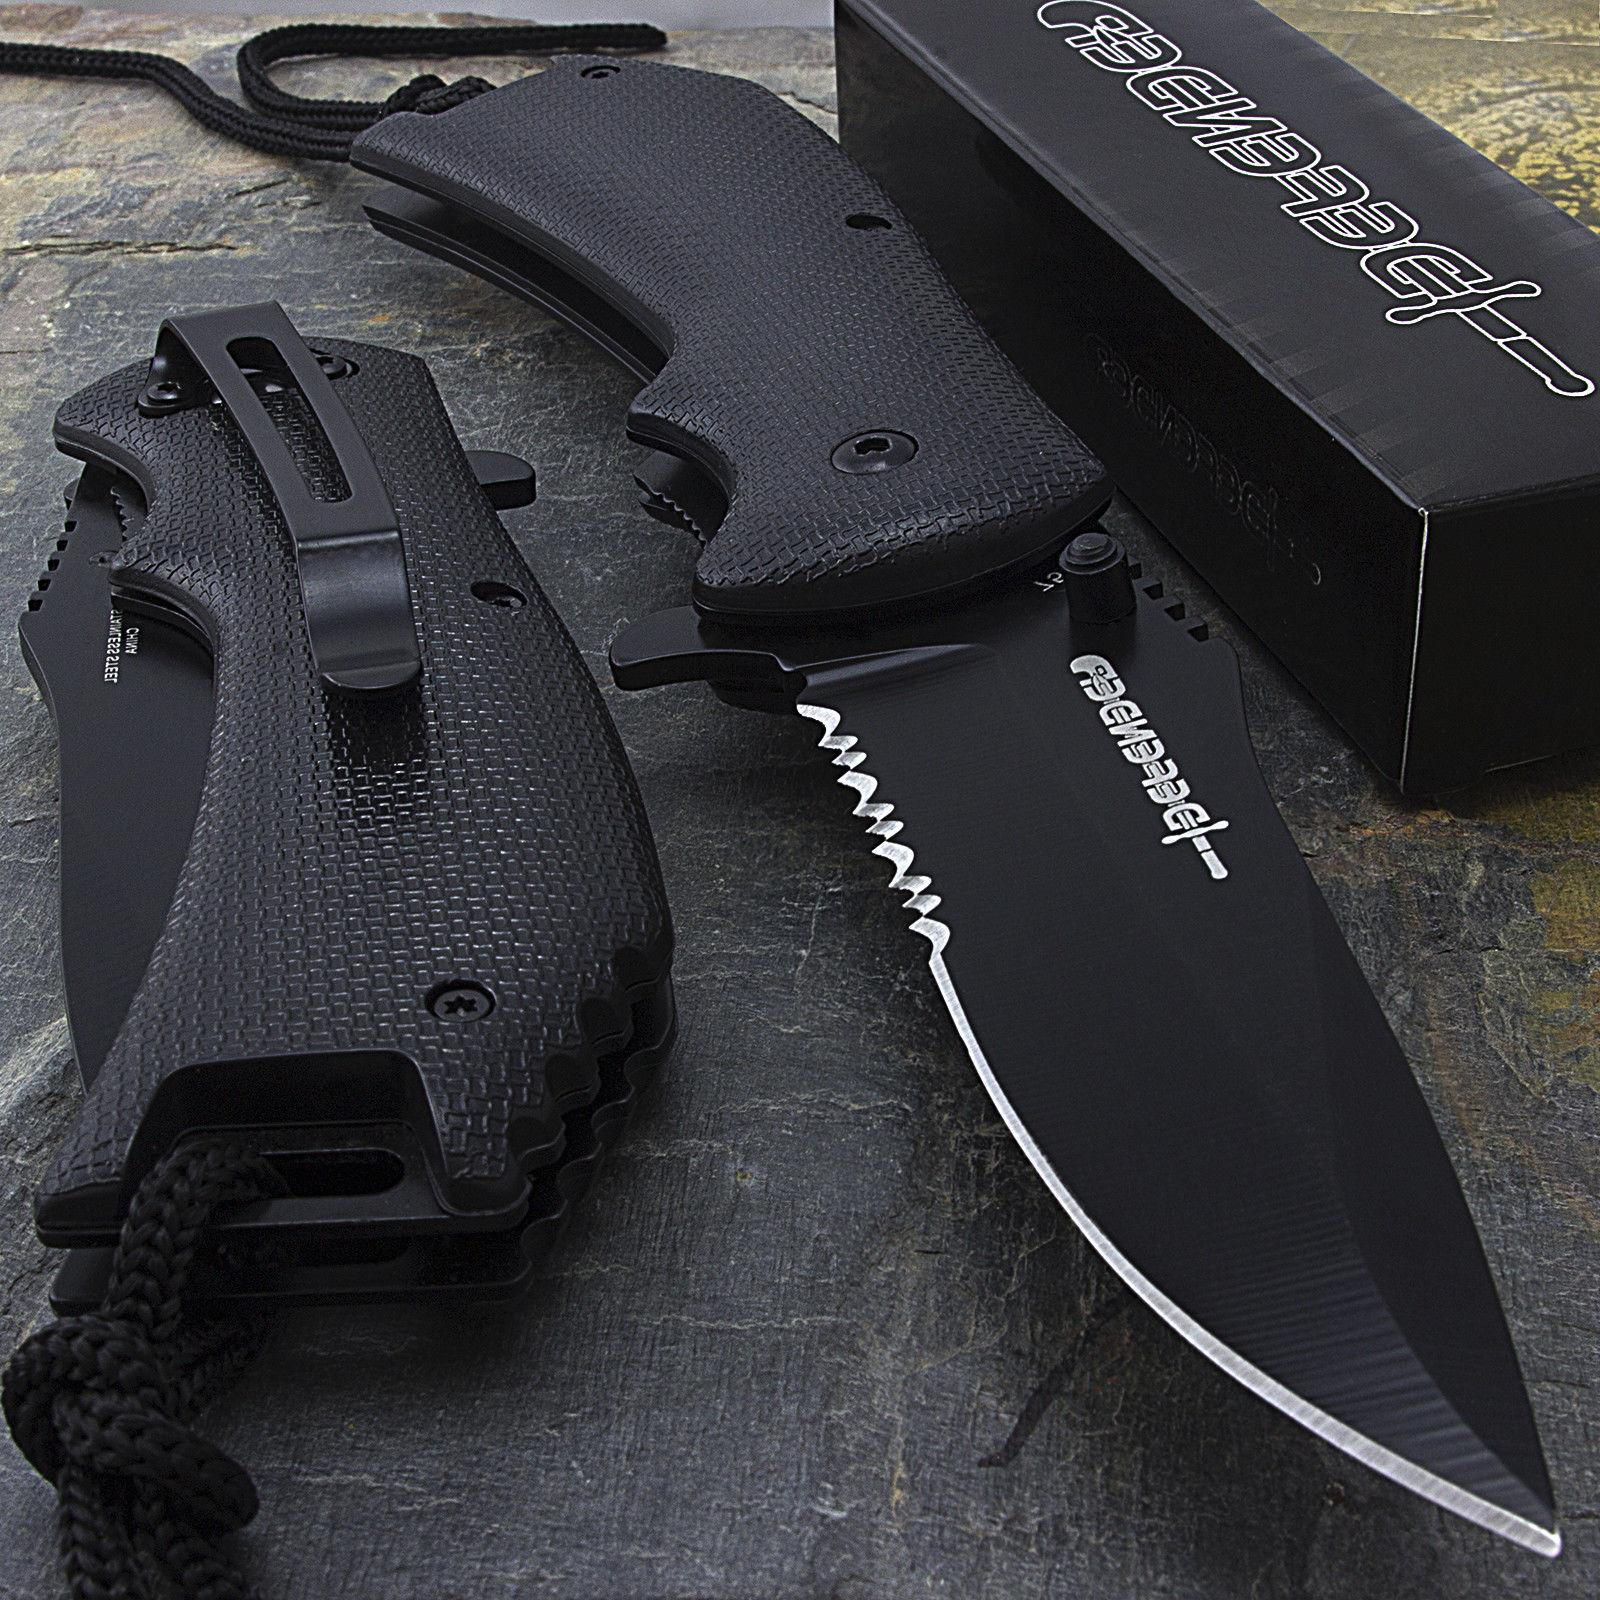 "8"" SPRING ASSISTED TACTICAL FOLDING POCKET KNIFE Blade Open"